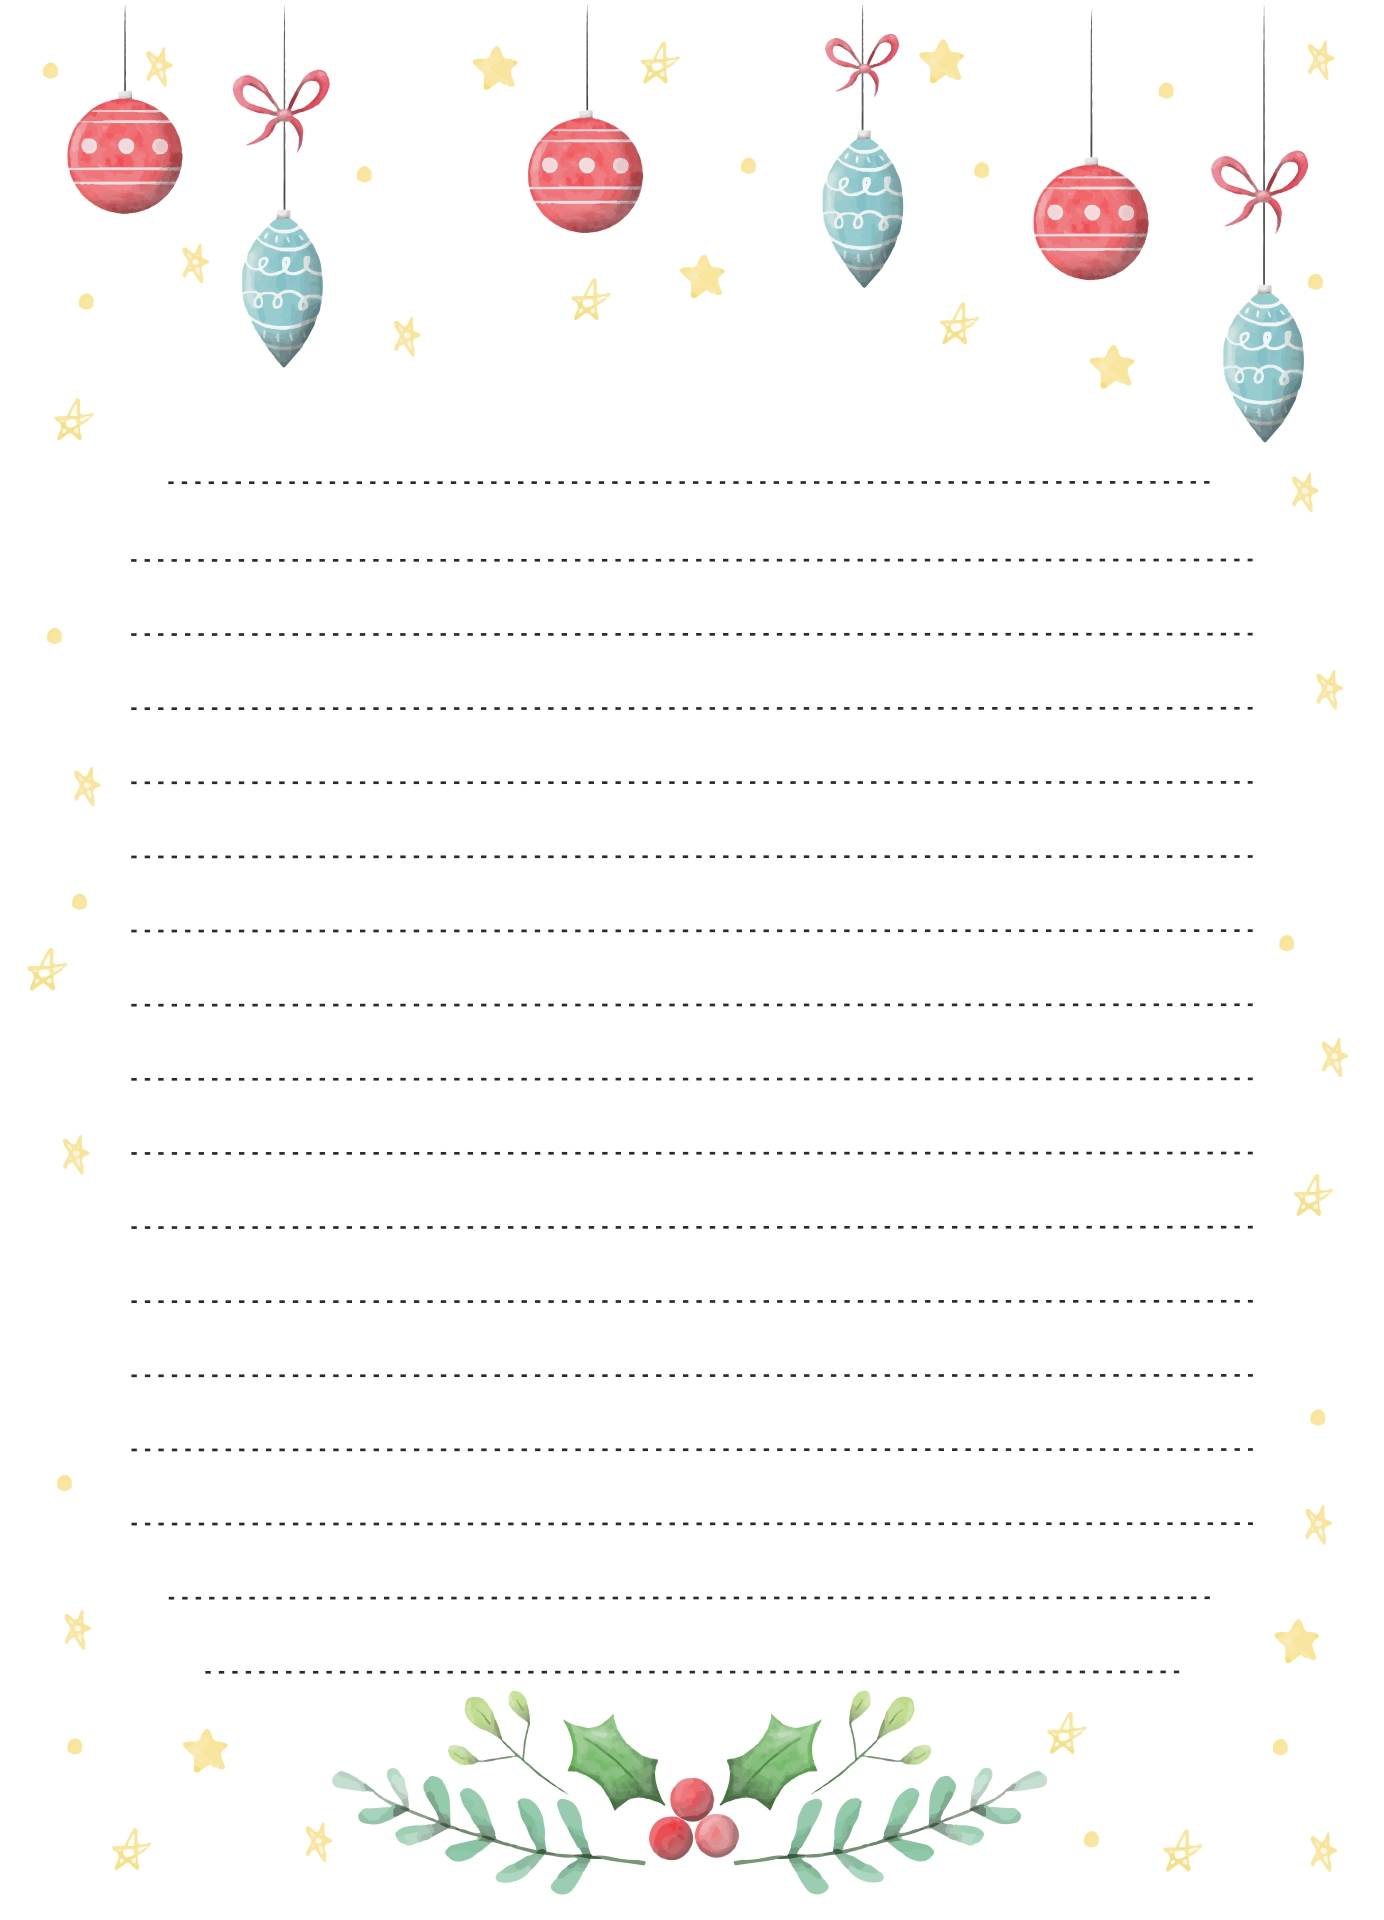 free printable lined paper template for kids - 6 best images of christmas writing paper template